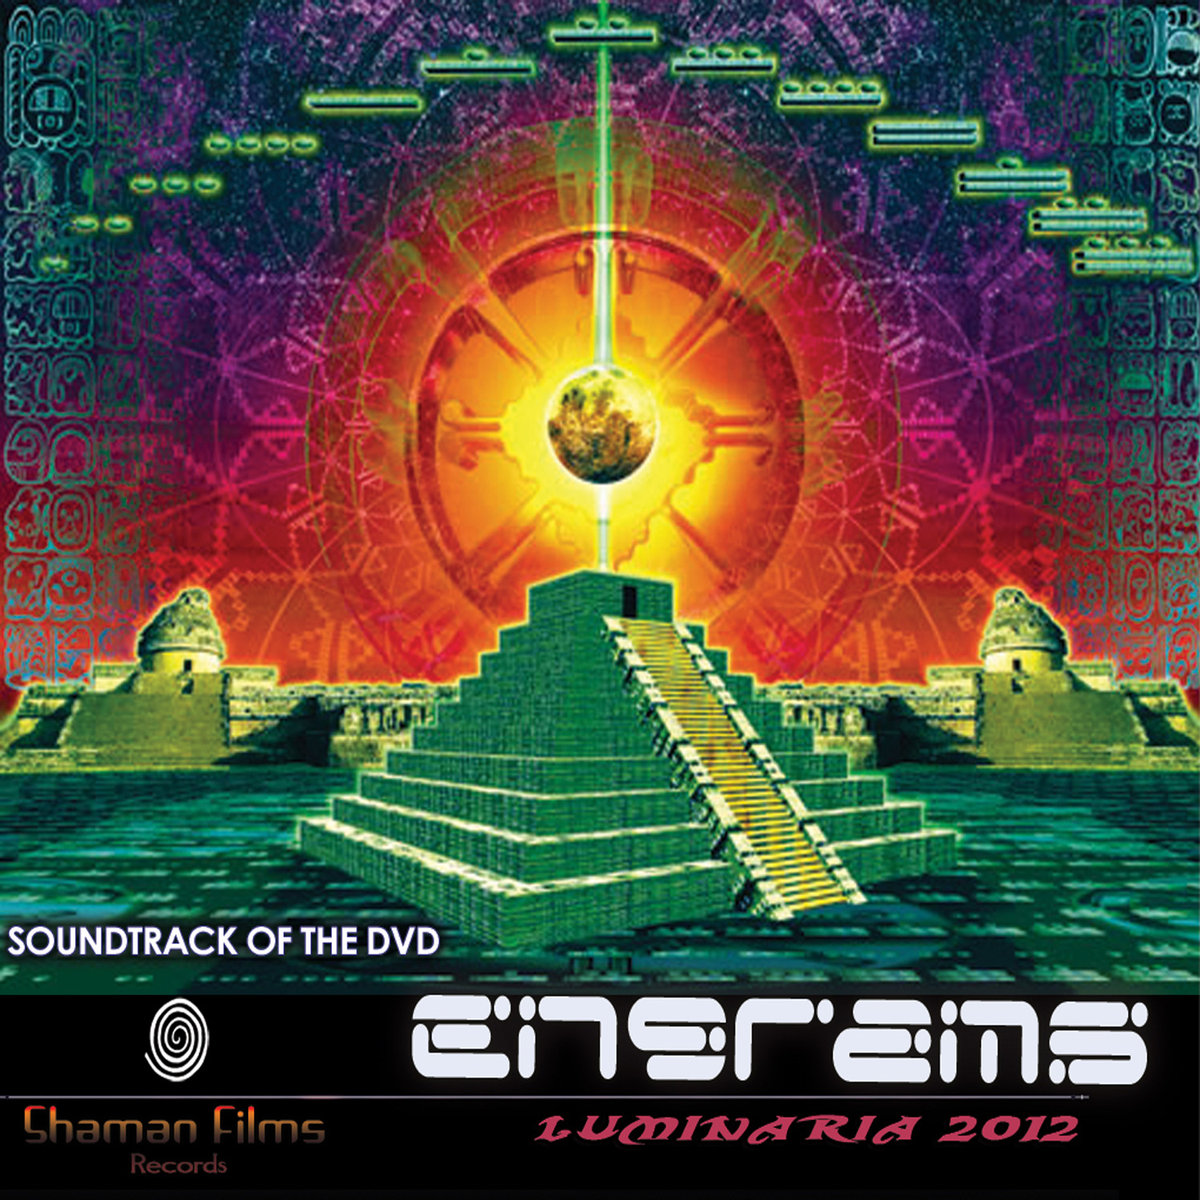 Mubali - Luminaria @ 'Various Artists - Engrams Vol. 1: Luminaria 2012' album (electronic, goa)